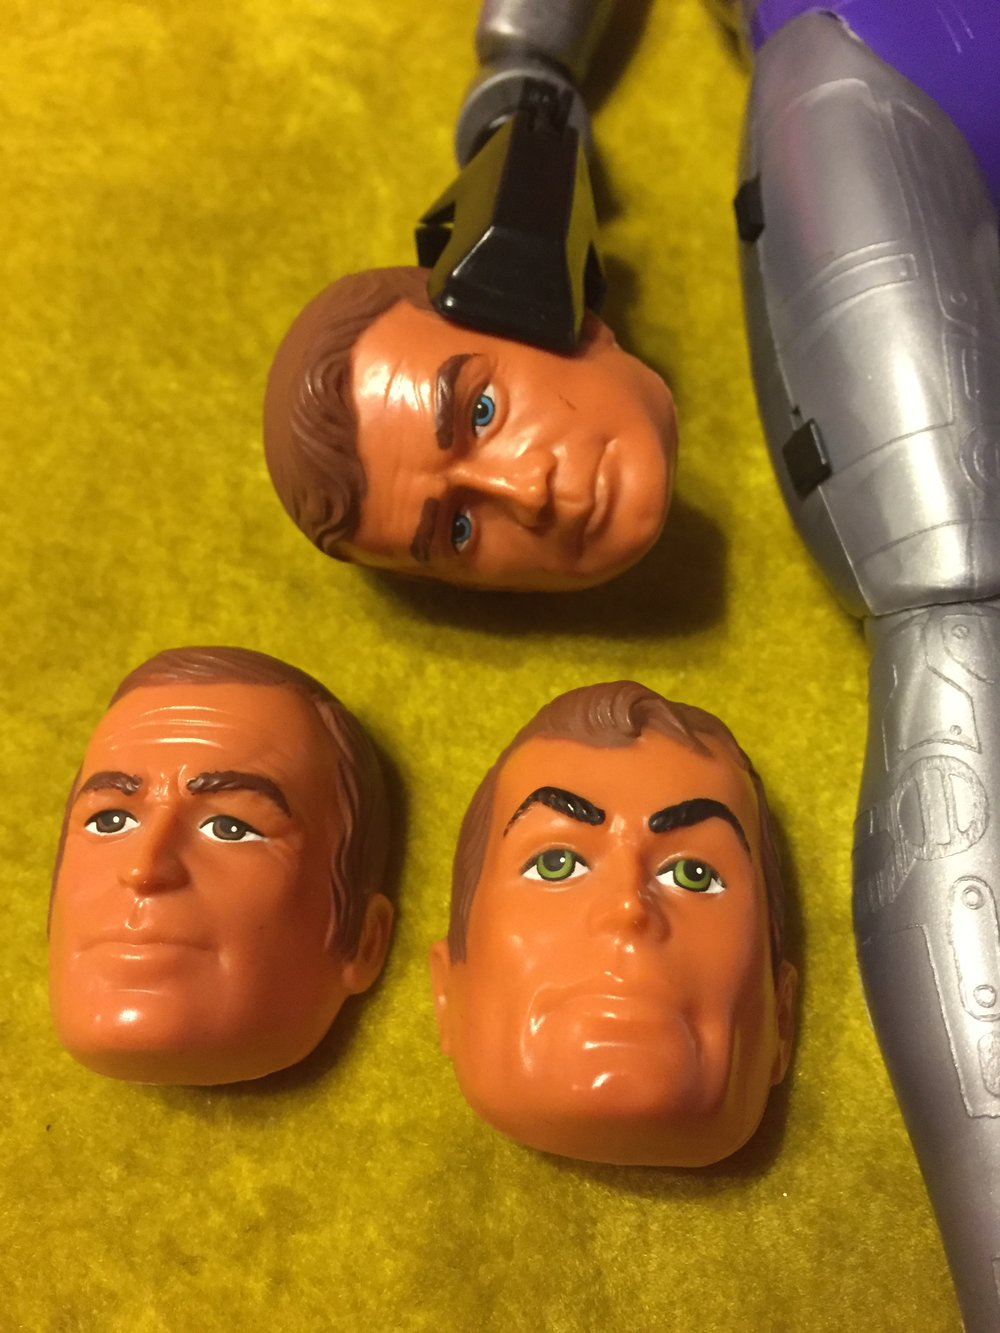 in the claw grip is the bionic man steve austin, then left to right:  Oscar goldman and maskatron human face.